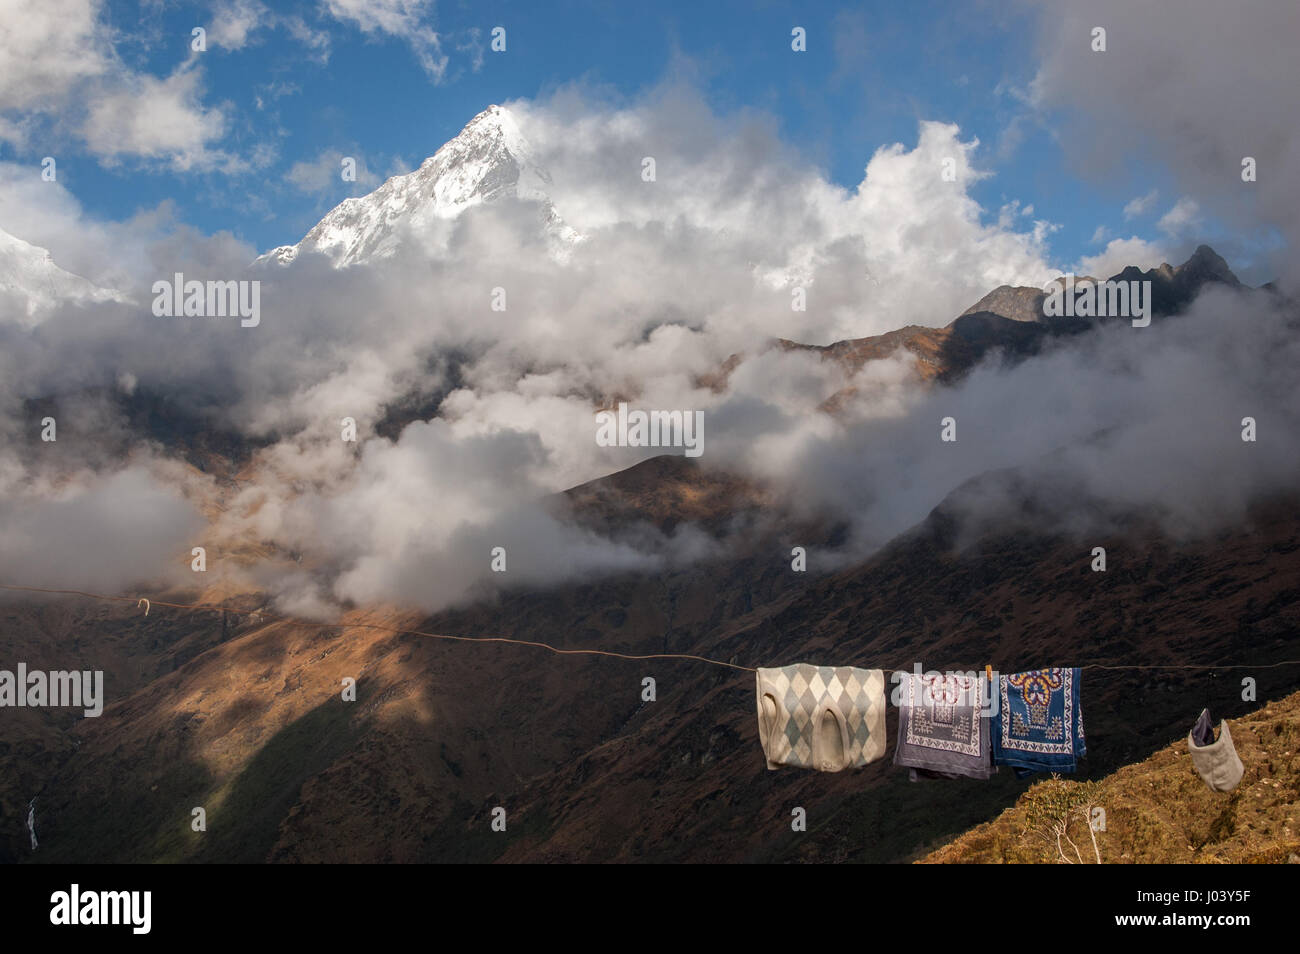 Close-up views of the Annapurnas from Kopra Ridge, Nepal; Tea-towels and a sweater hang outside to dry in the sunshine - Stock Image